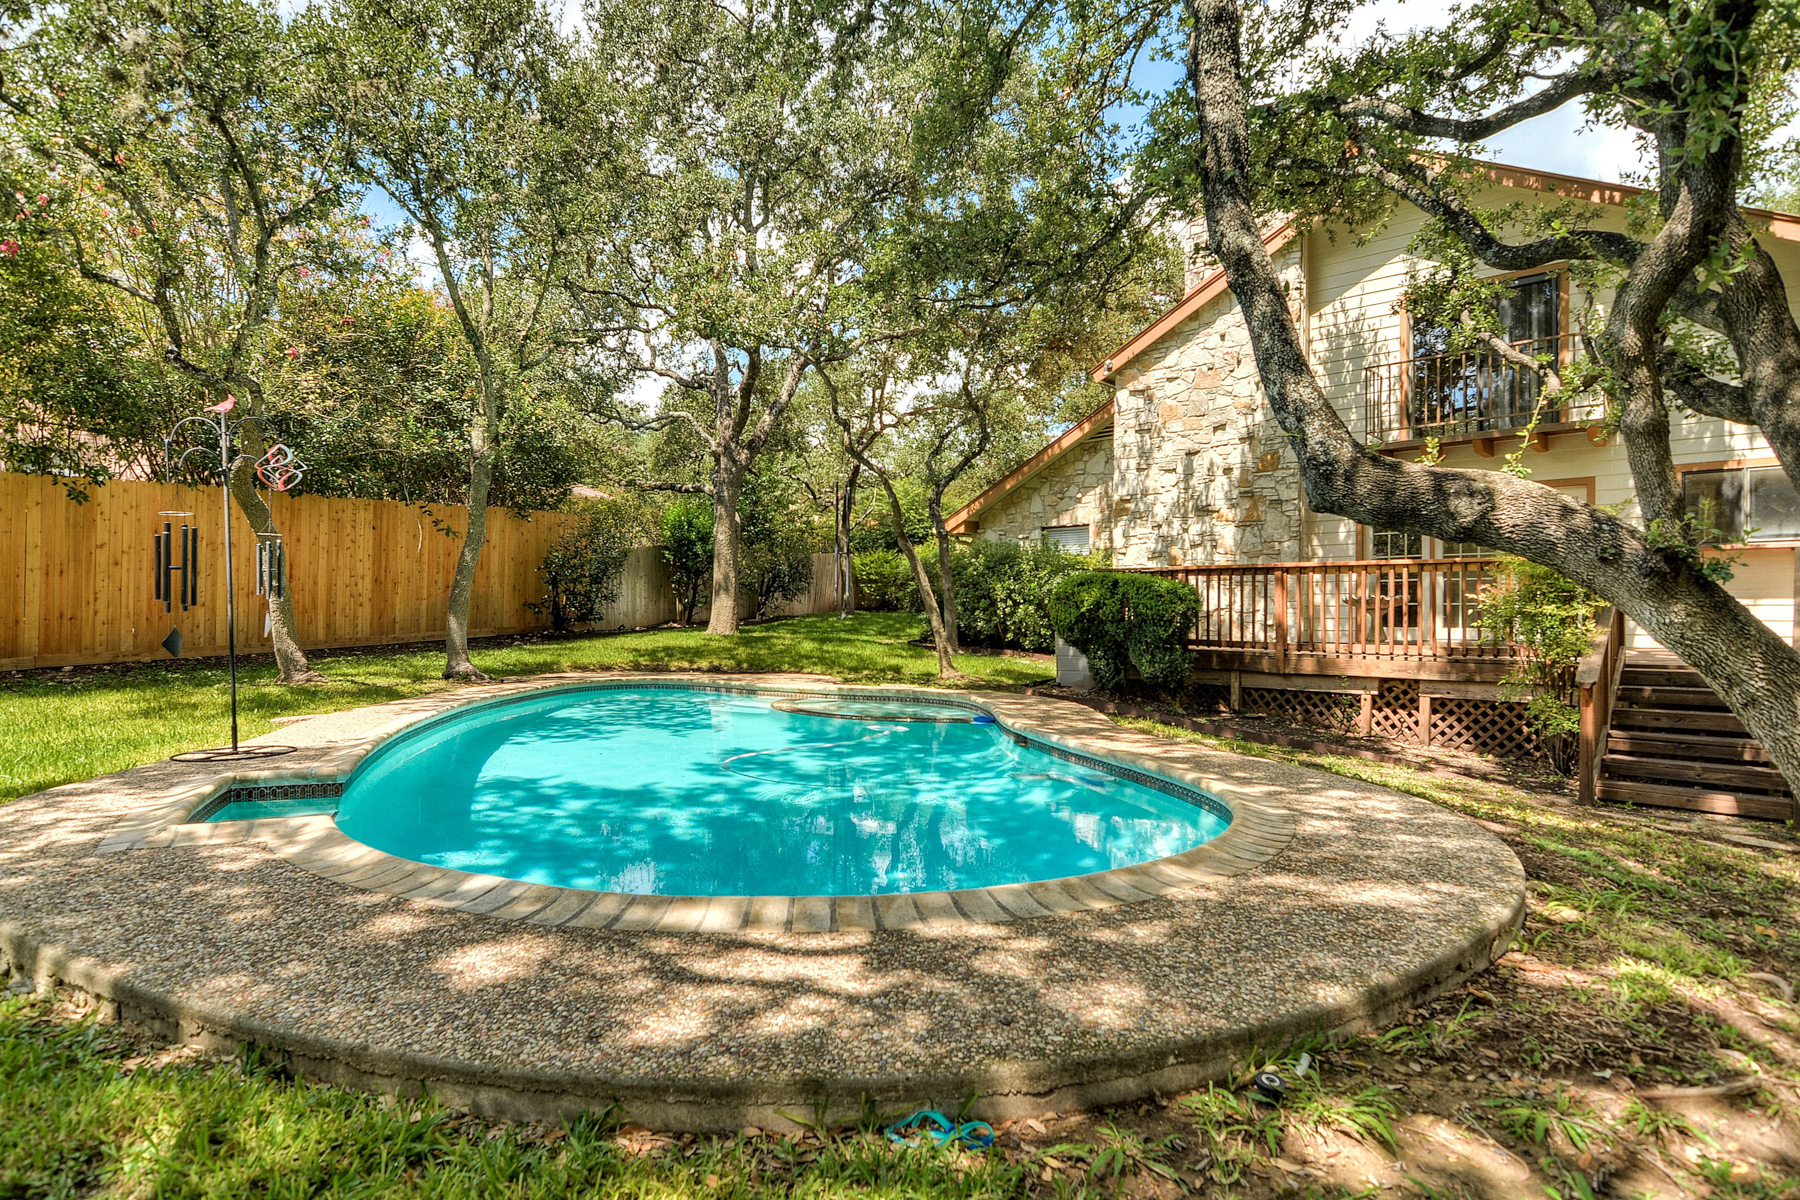 Additional photo for property listing at Gem in the heart of Prime Hunters Creek 13011 Hunters Ledge San Antonio, Texas 78230 United States